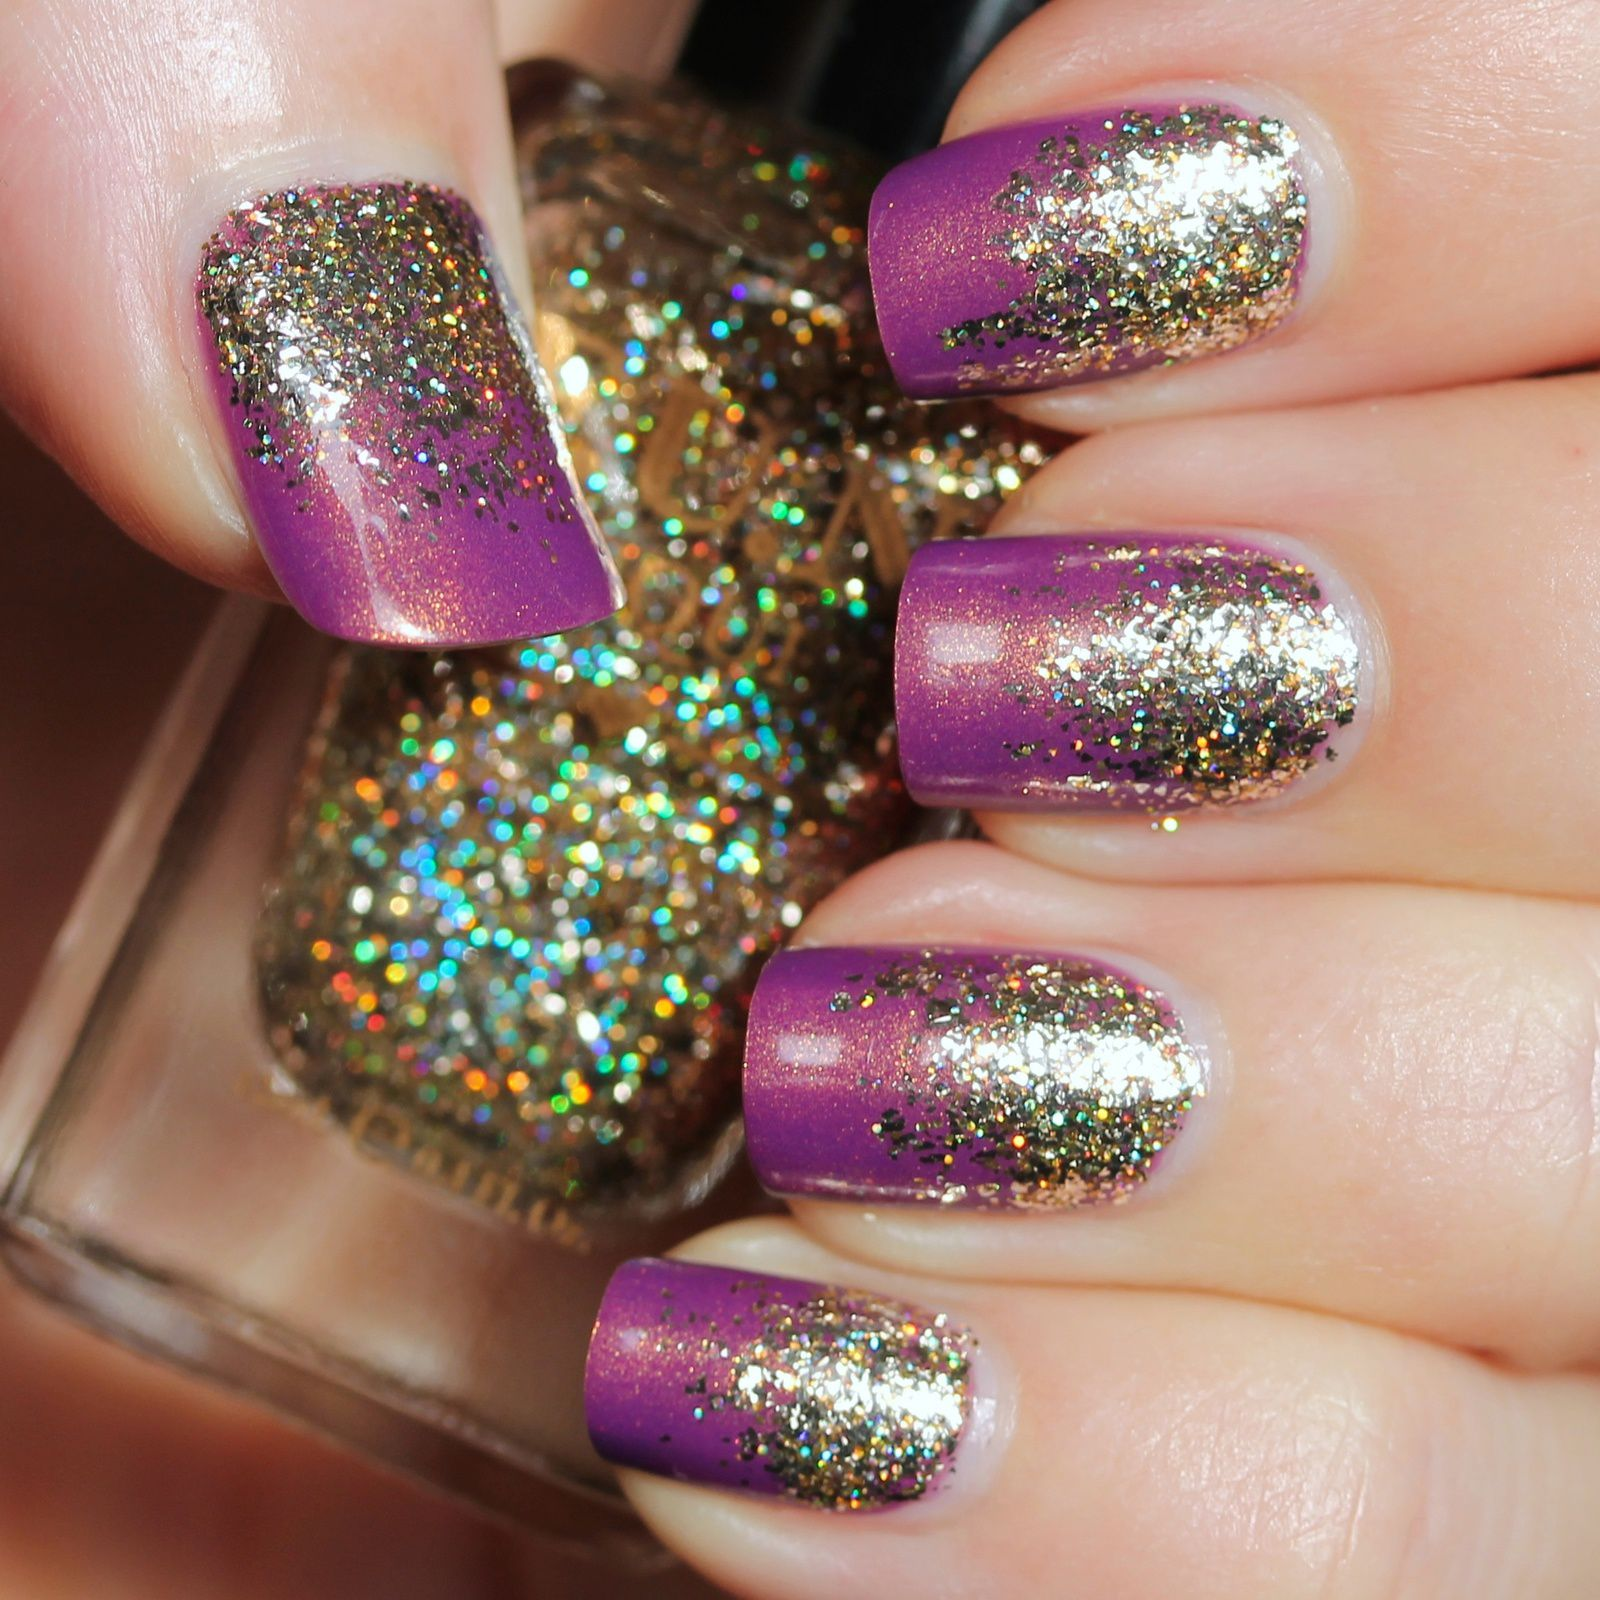 Sally Hansen Complete Care 4-in-1 Extra Moisturizing Nail Treatment / Nicole by OPI Purple Yourself Together / FUN Lacquer King / HK Girl Top Coat